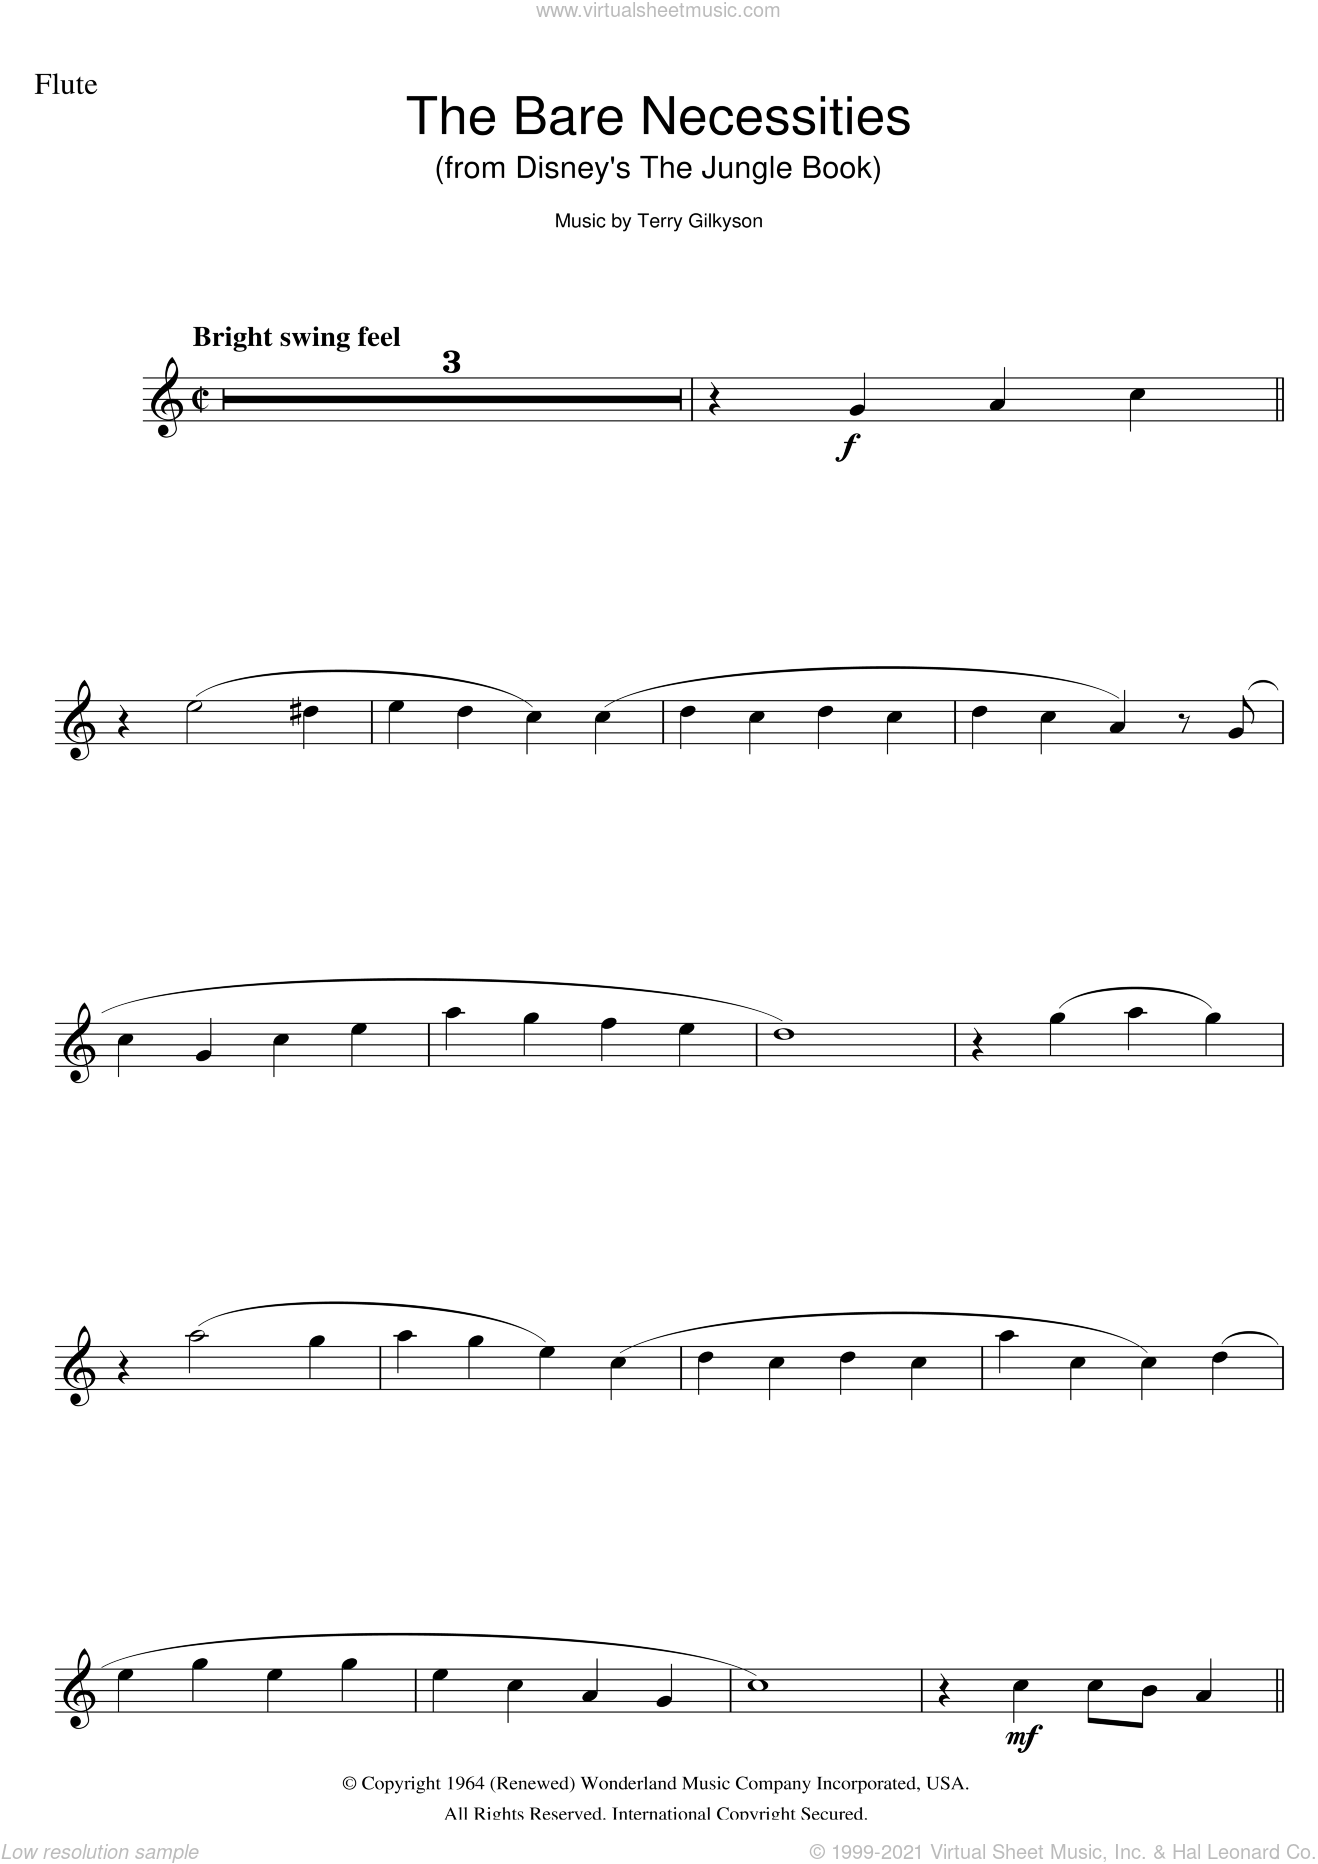 The Bare Necessities (from Disney's The Jungle Book) sheet music for flute solo by Terry Gilkyson, intermediate skill level